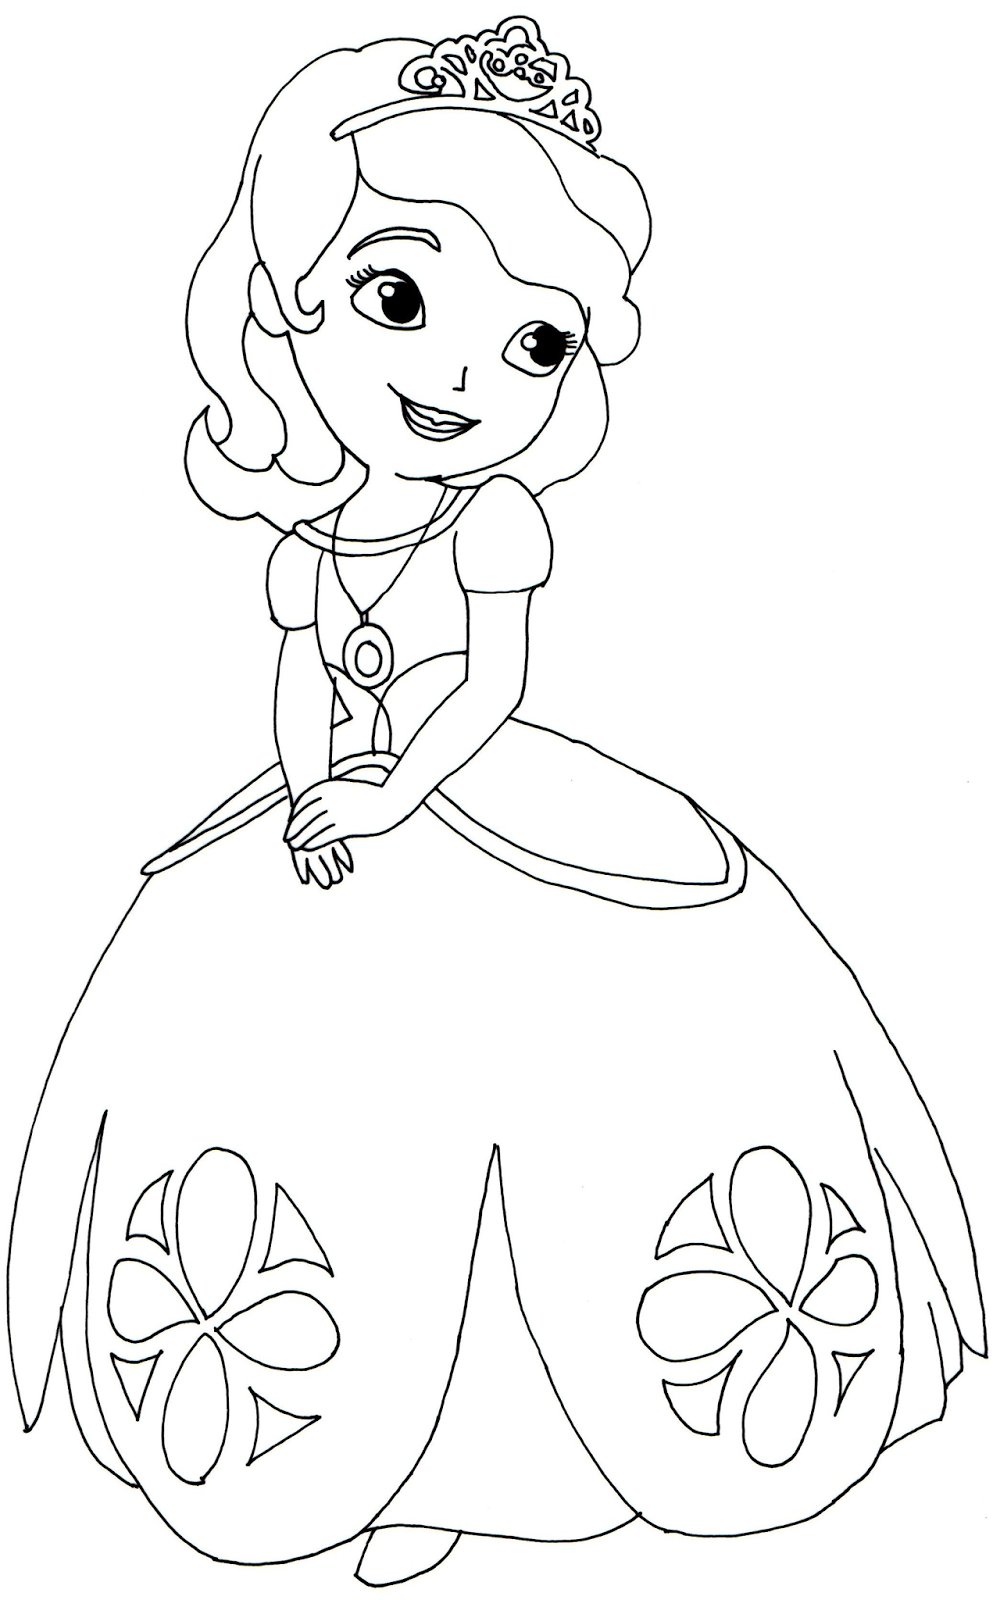 Sofia First Coloring Pages Cartoon Wallpapers Colouring - Sofia The First Coloring Pages , HD Wallpaper & Backgrounds